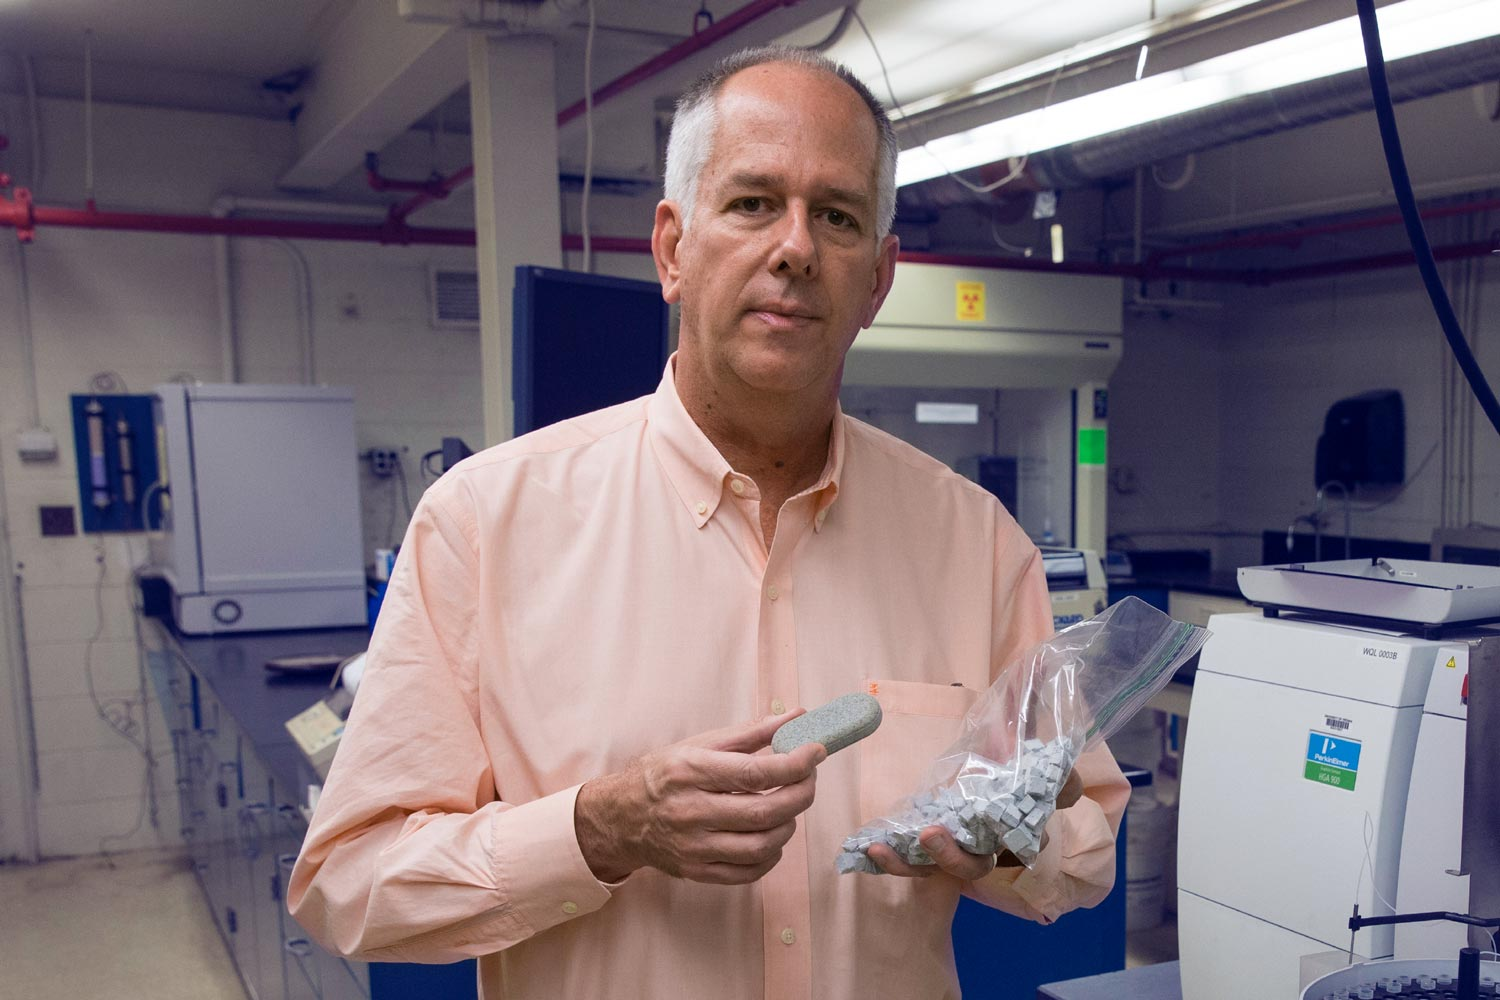 Professor Jim Smith developed the MadiDrop tablet in his UVA engineering lab.